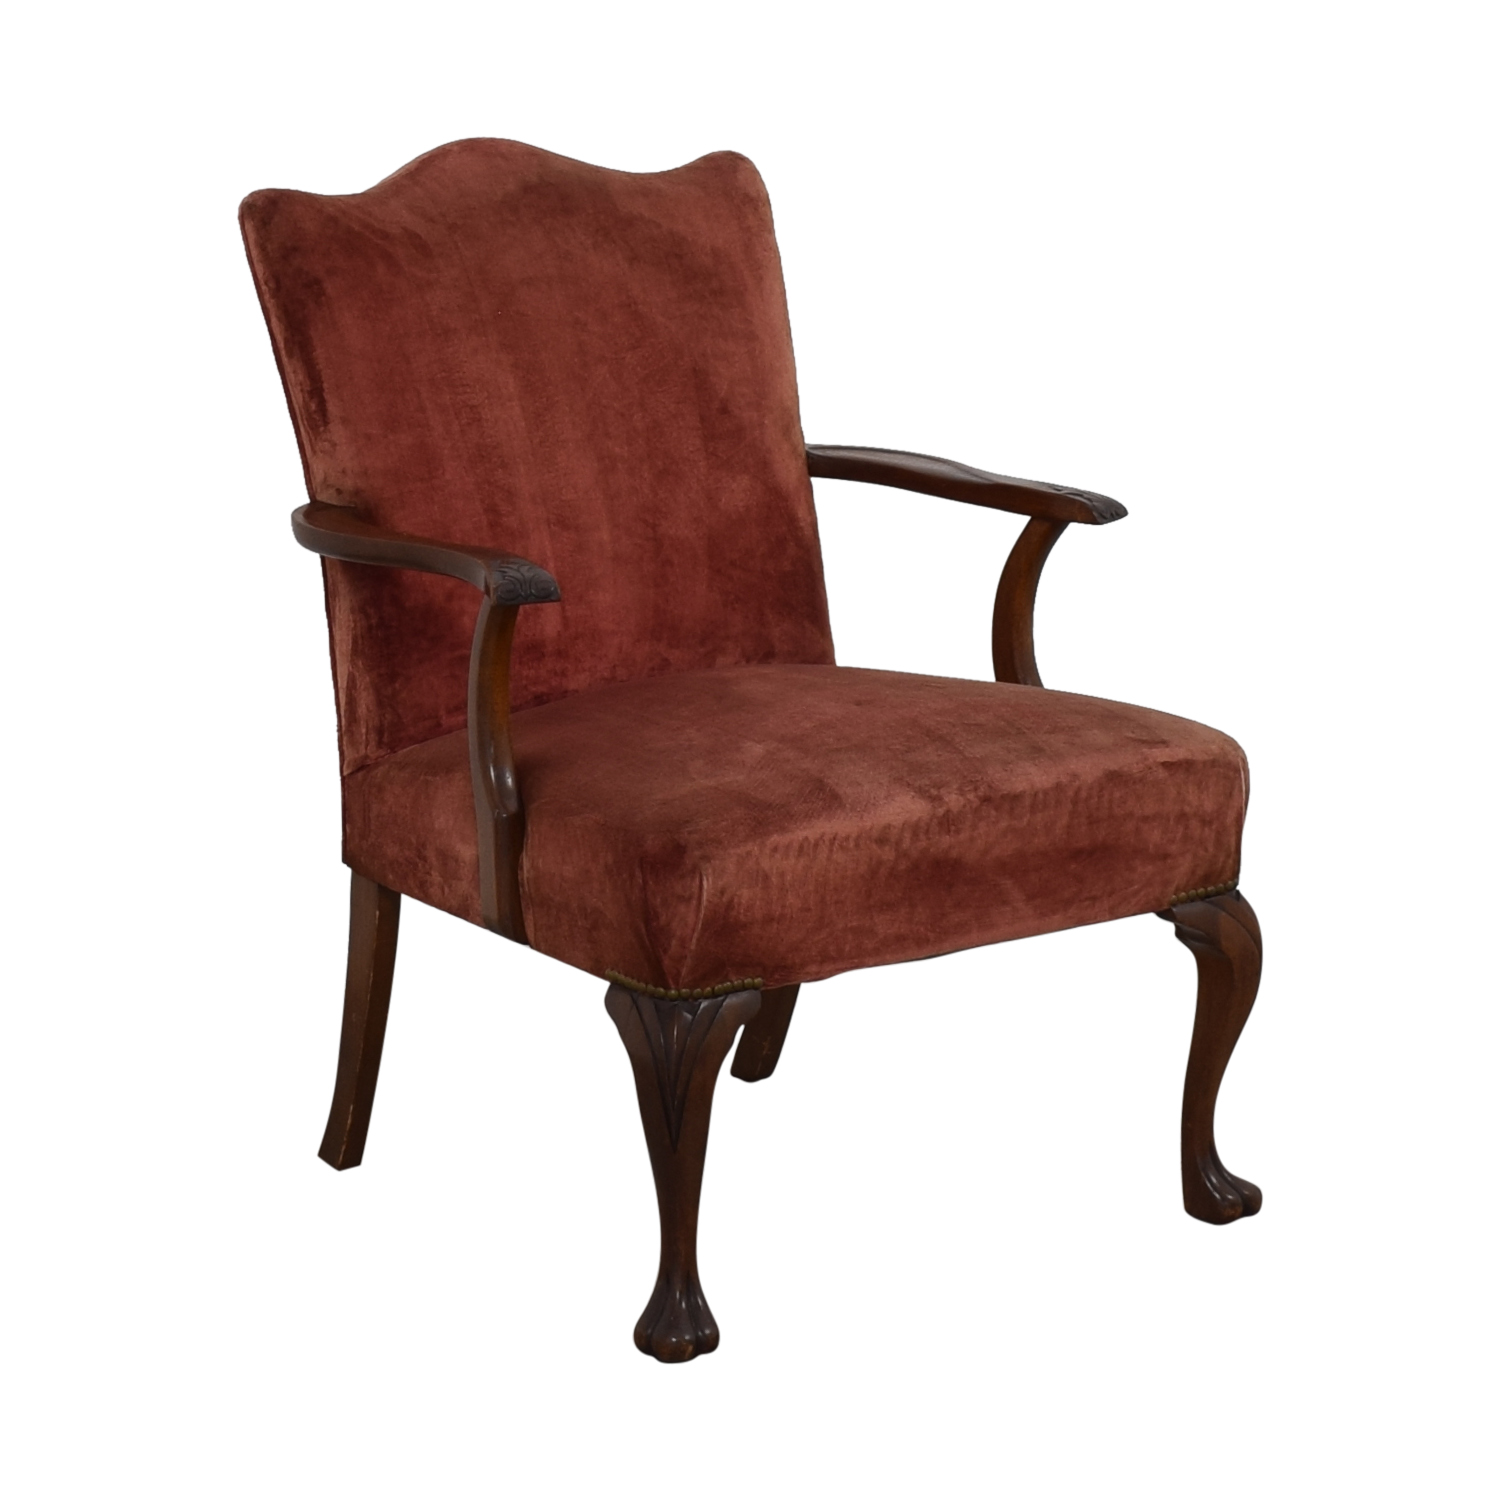 Antique Curved Back Armchair for sale